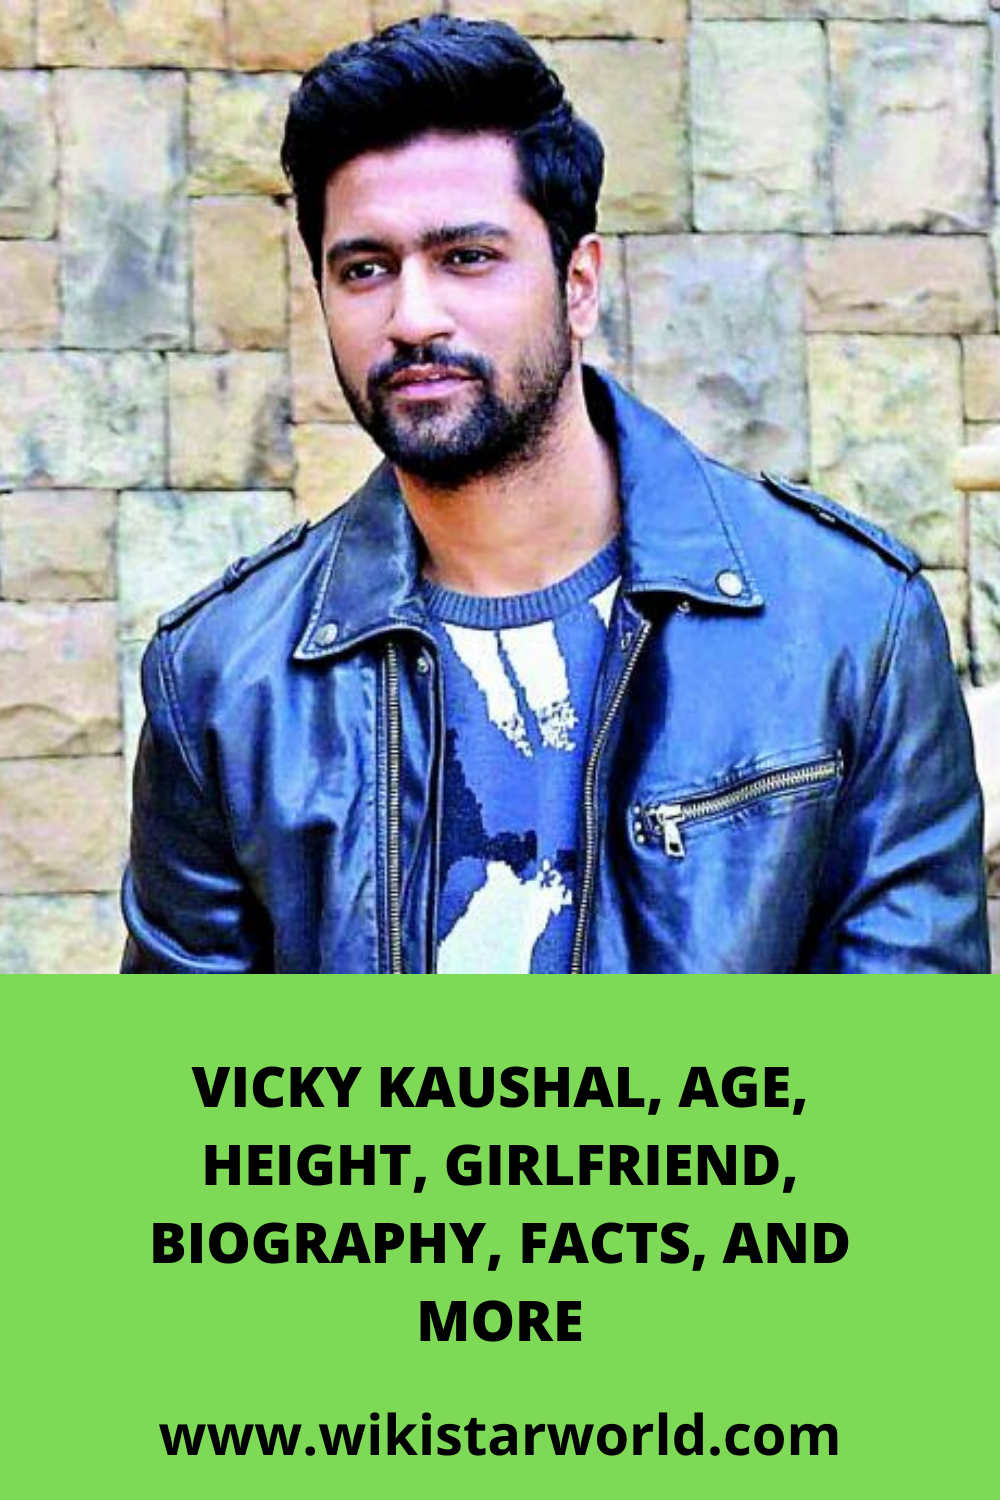 VICKY KAUSHAL, AGE, HEIGHT, GIRLFRIEND, BIOGRAPHY, FACTS